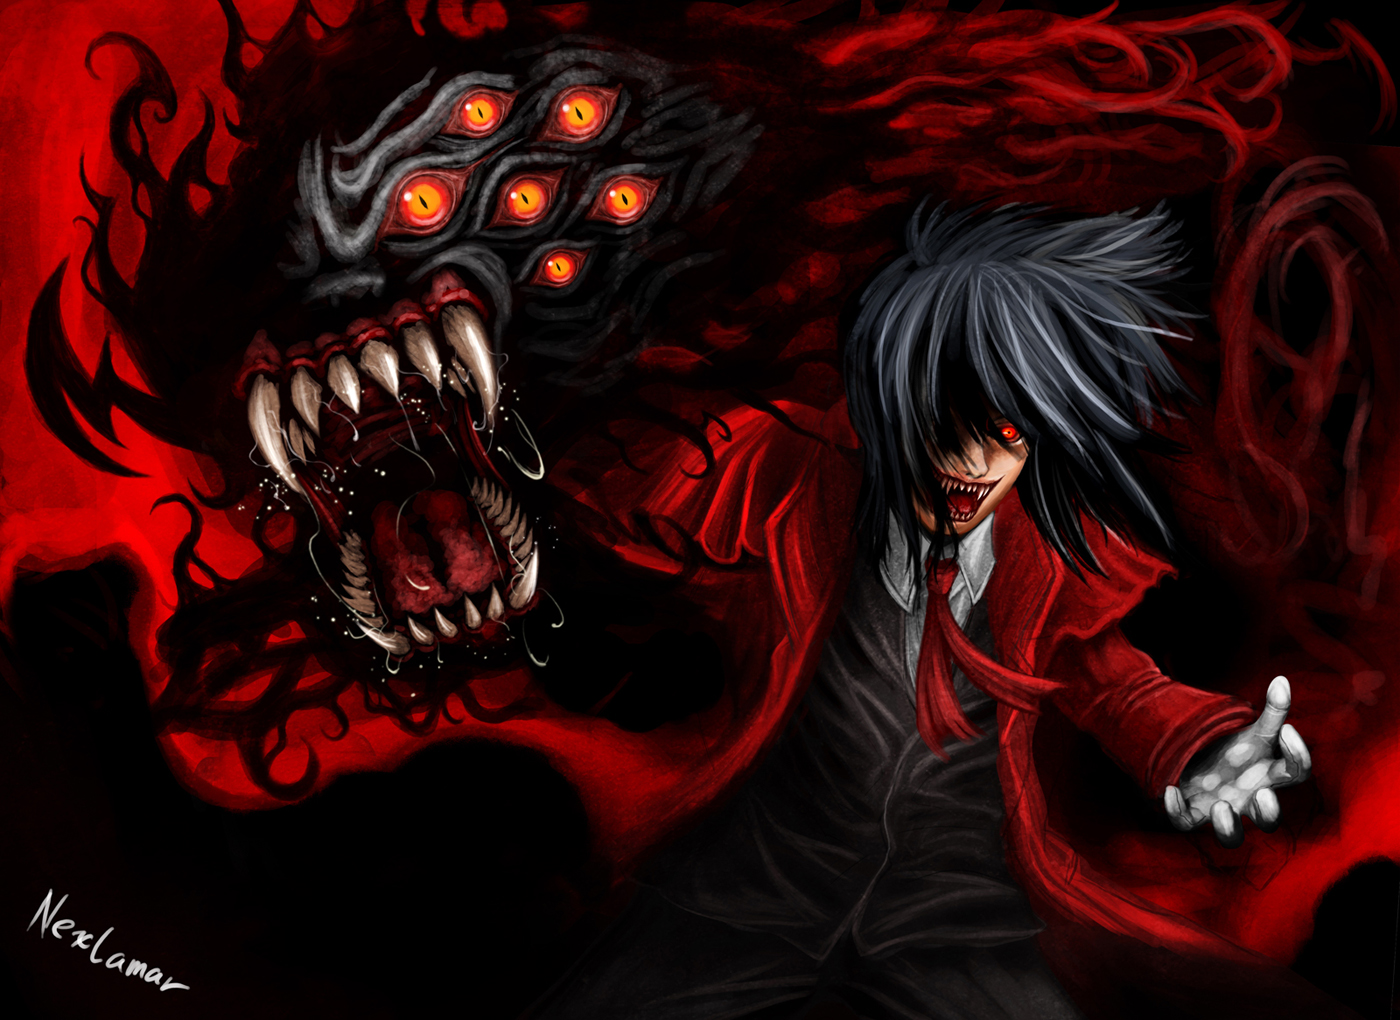 Hellsing Backgrounds, Compatible - PC, Mobile, Gadgets| 1400x1020 px